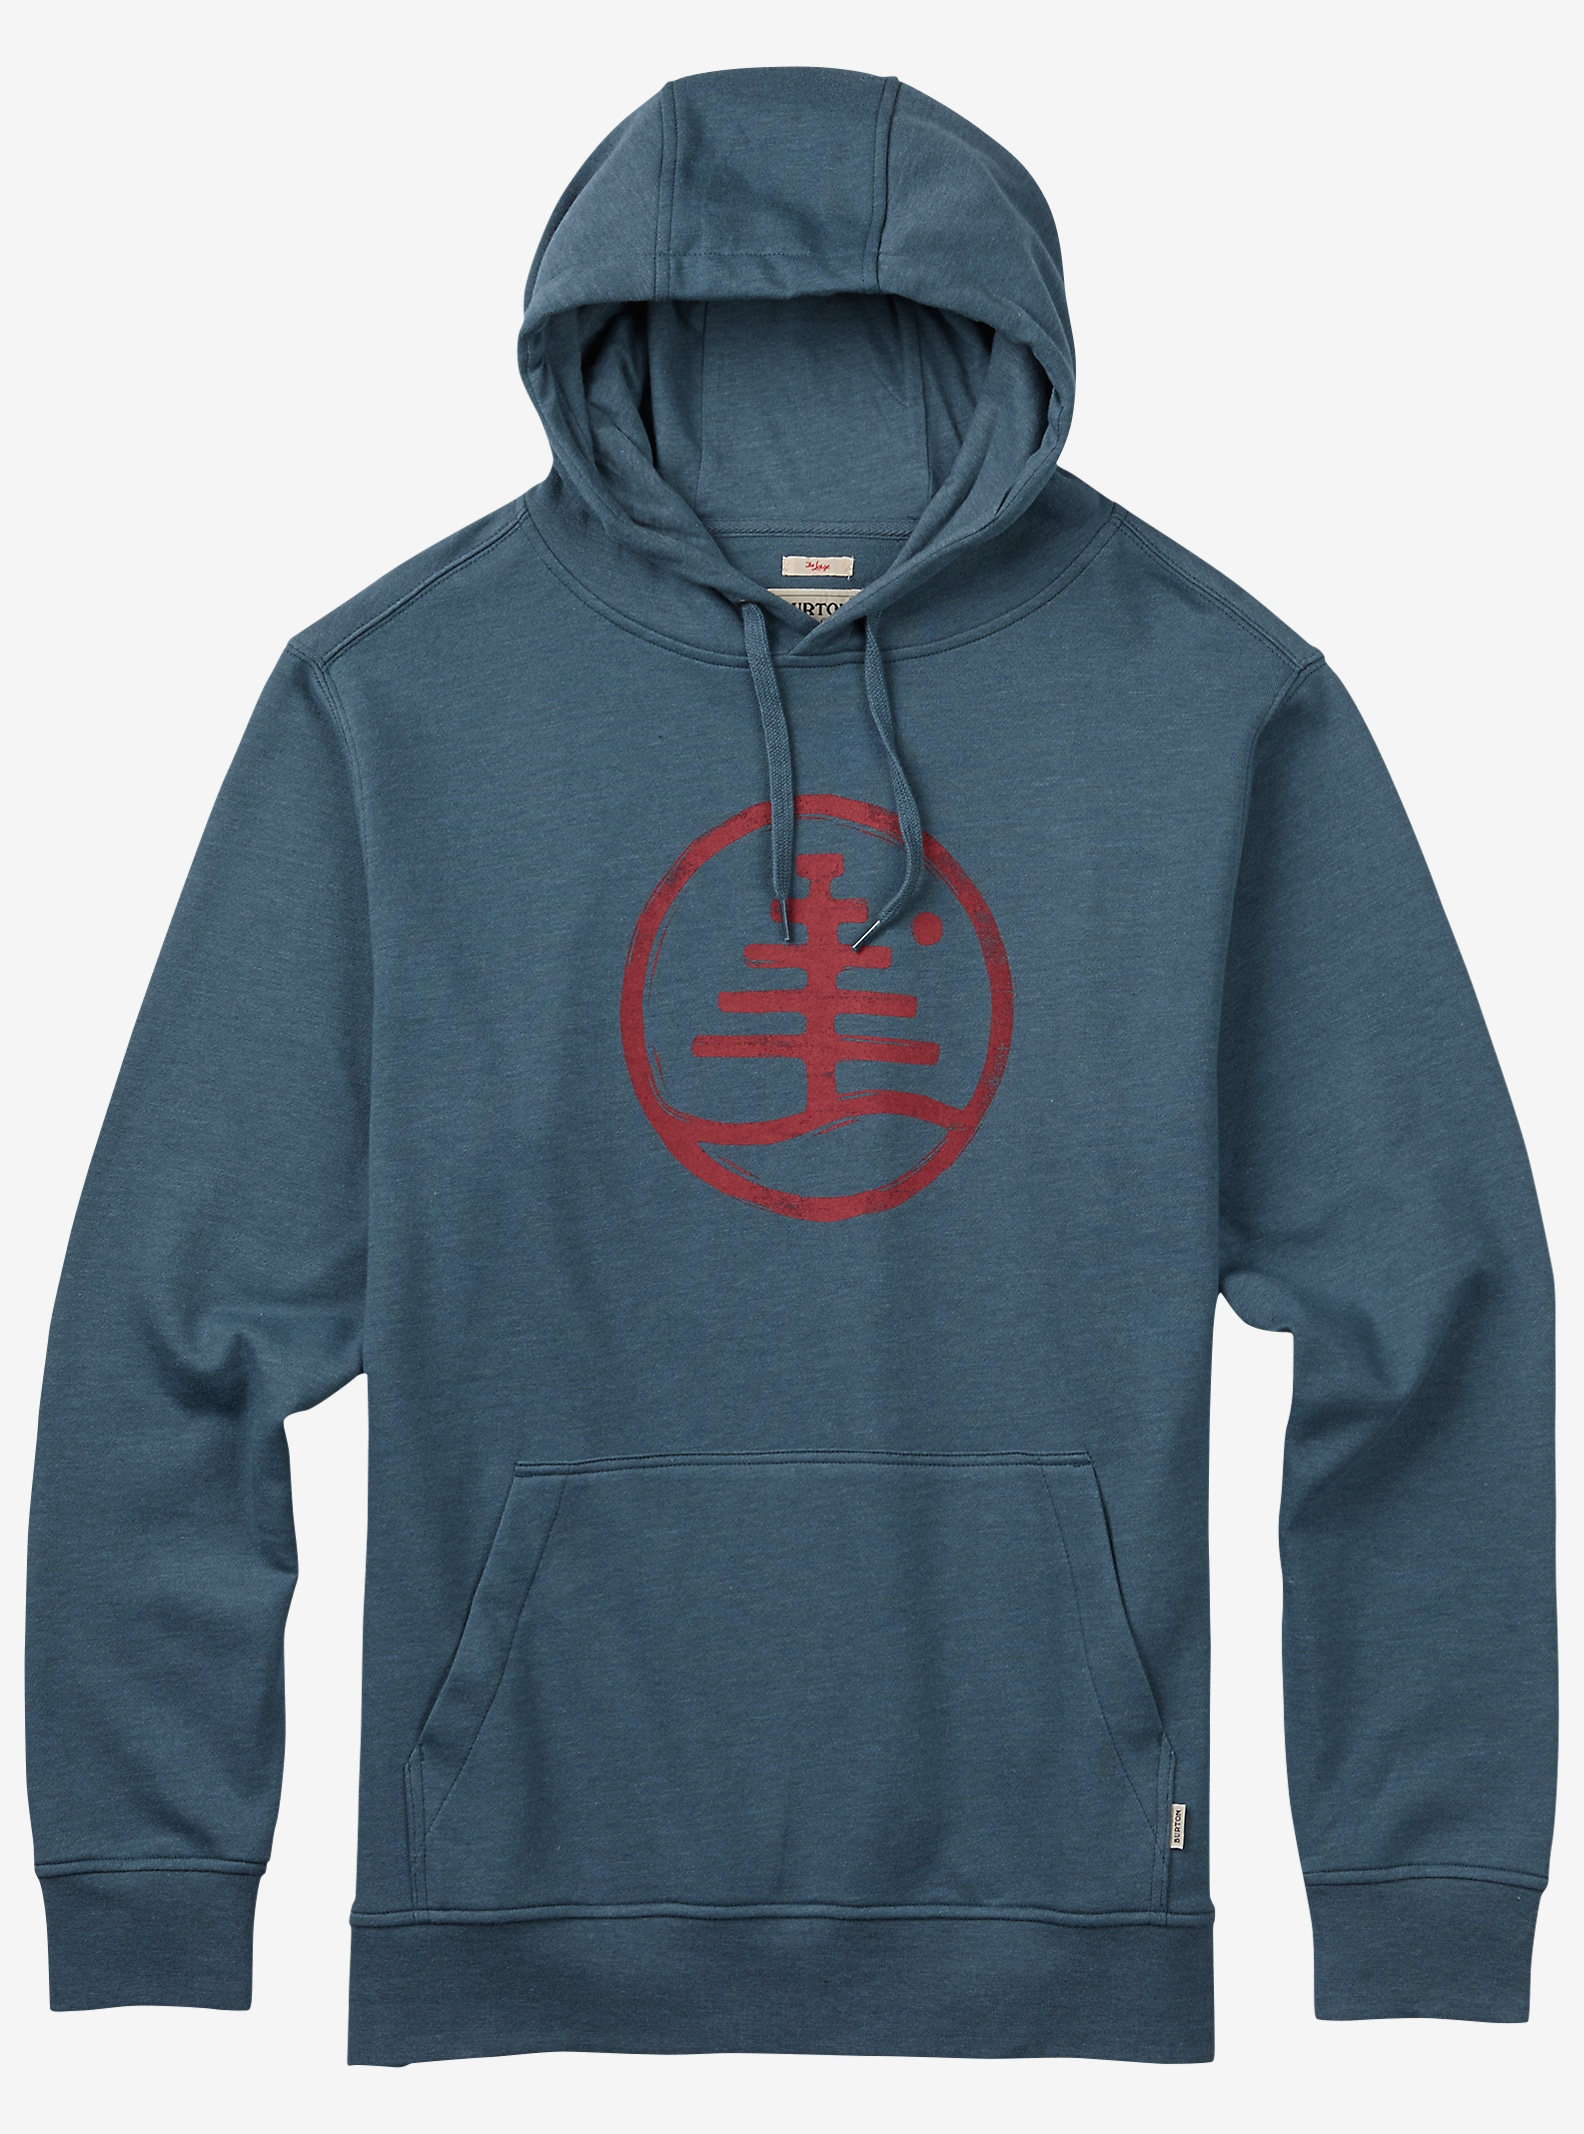 Burton Woodblock Family Tree Recycled Hoodie angezeigt in Blue Mirage Heather